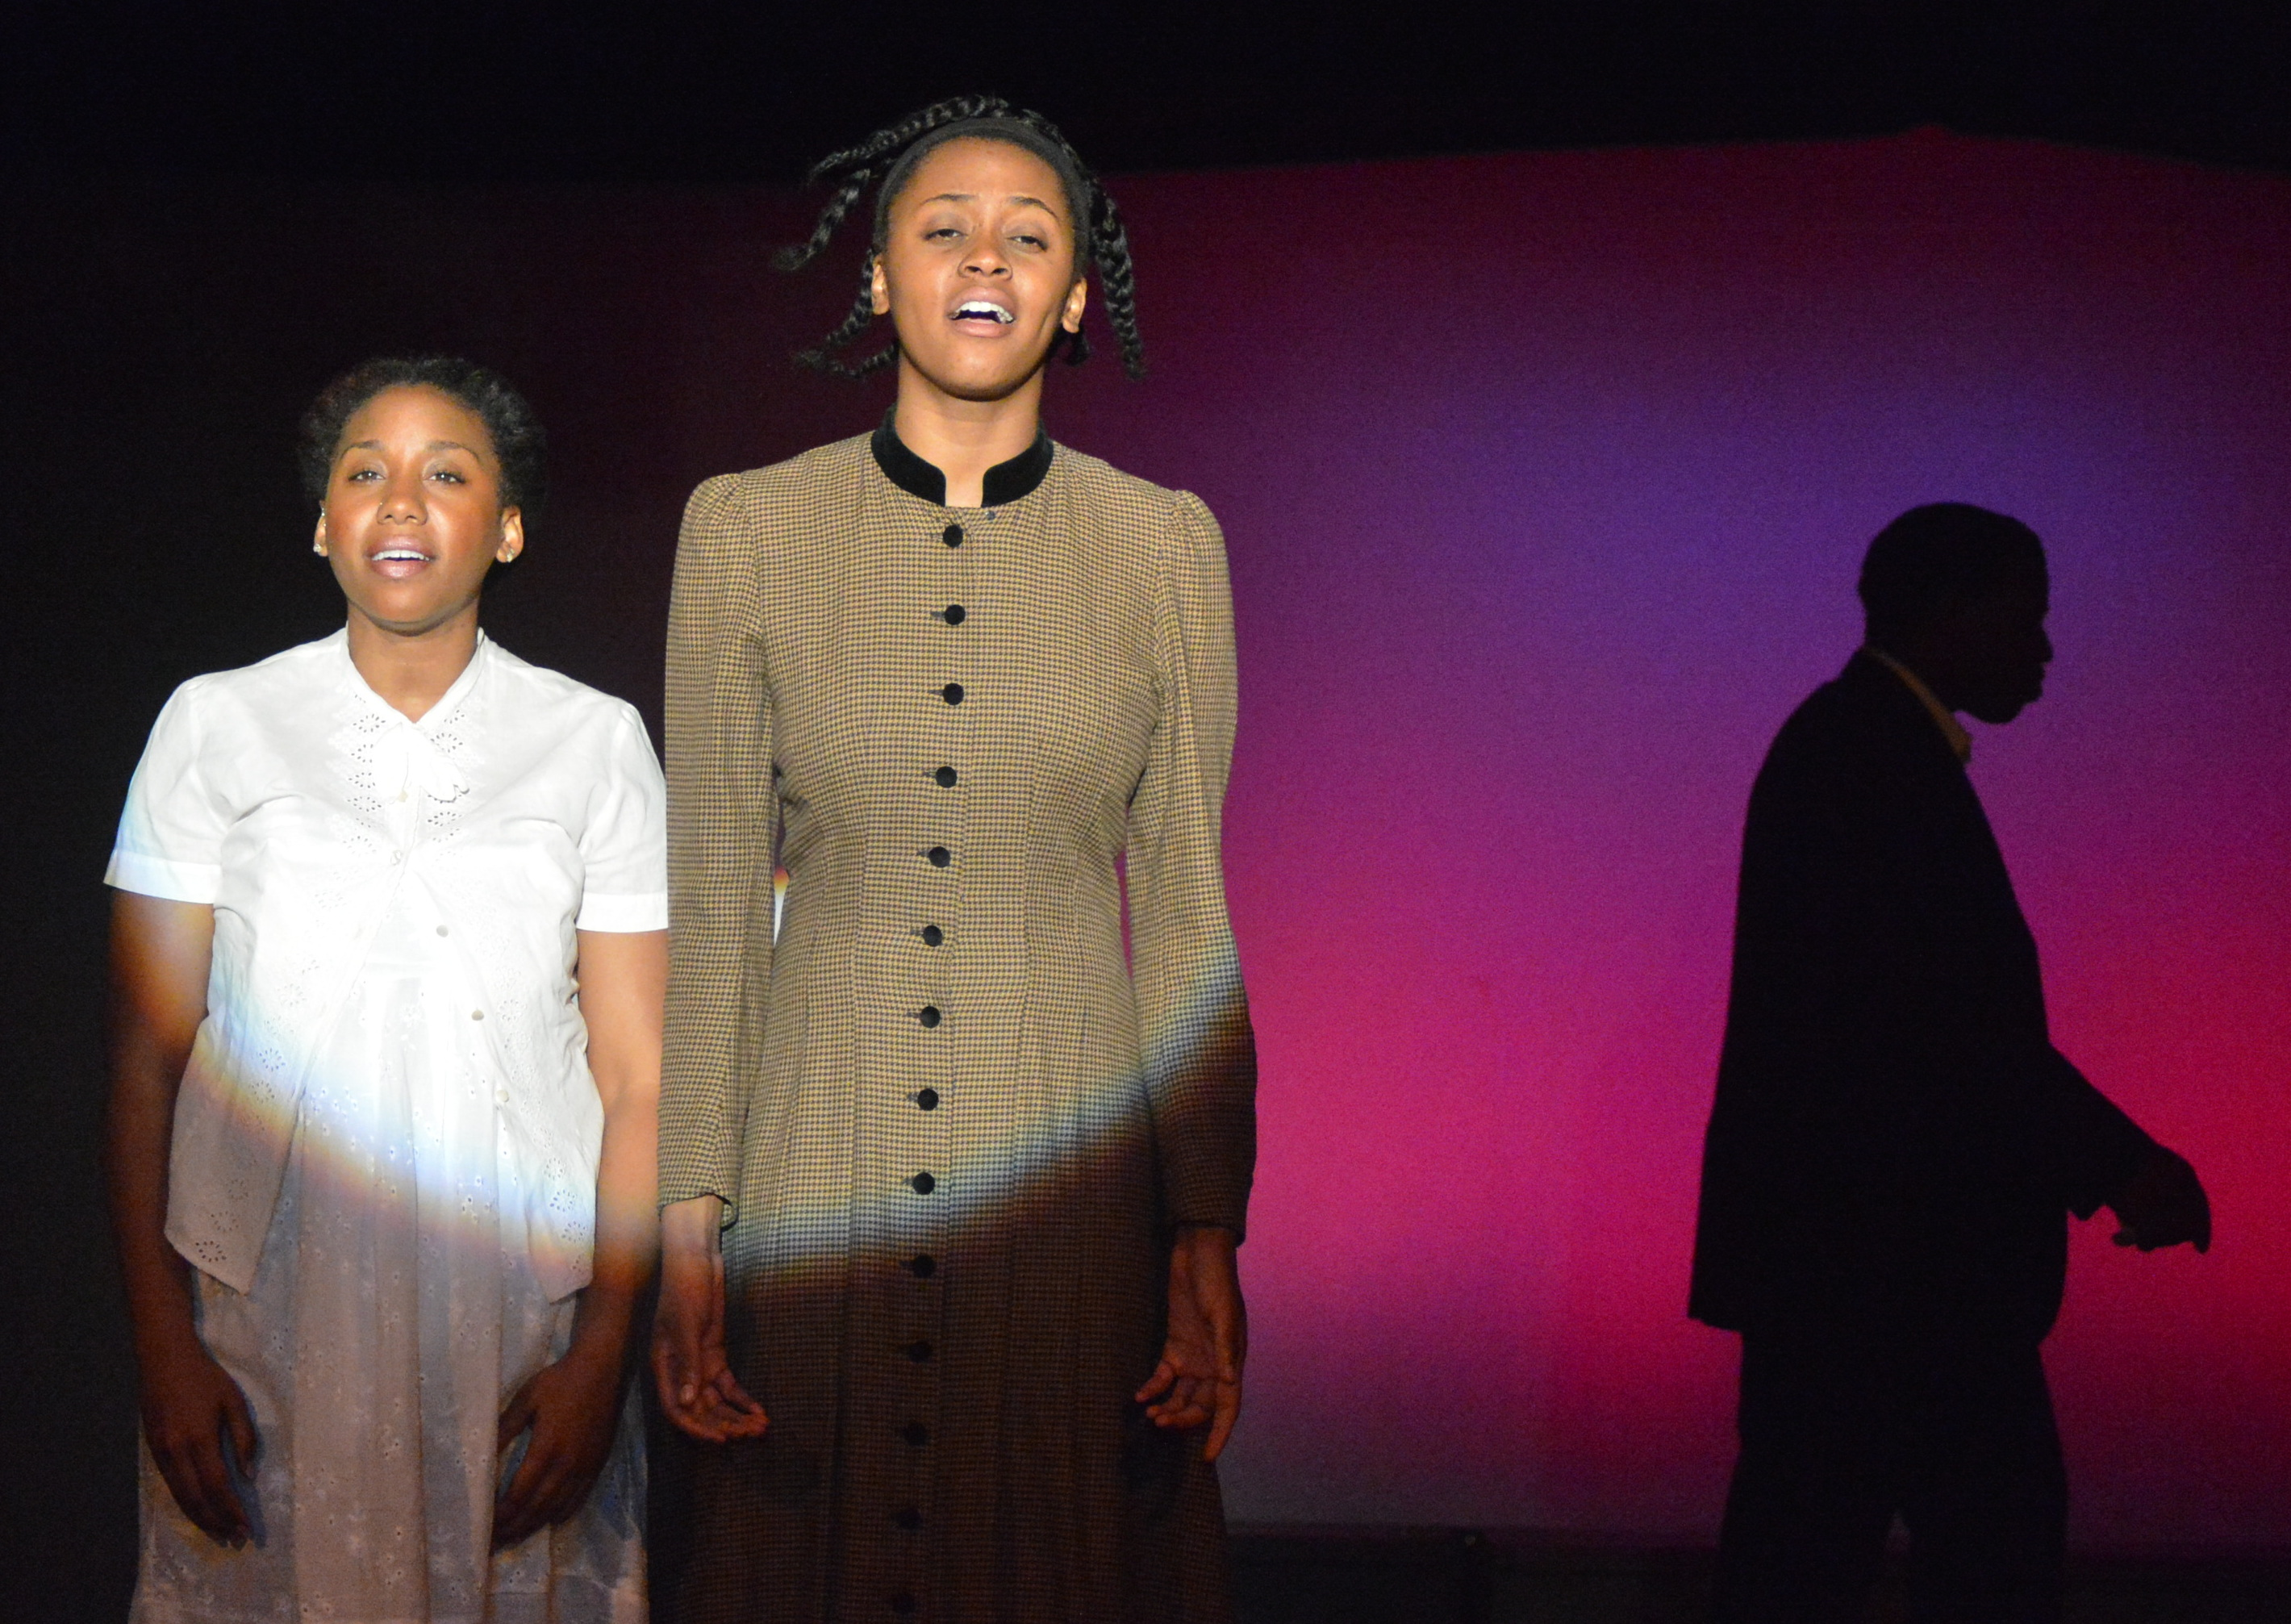 Giselle Nakhid as Netti and Asia Nelson as Celie in The Color Purple